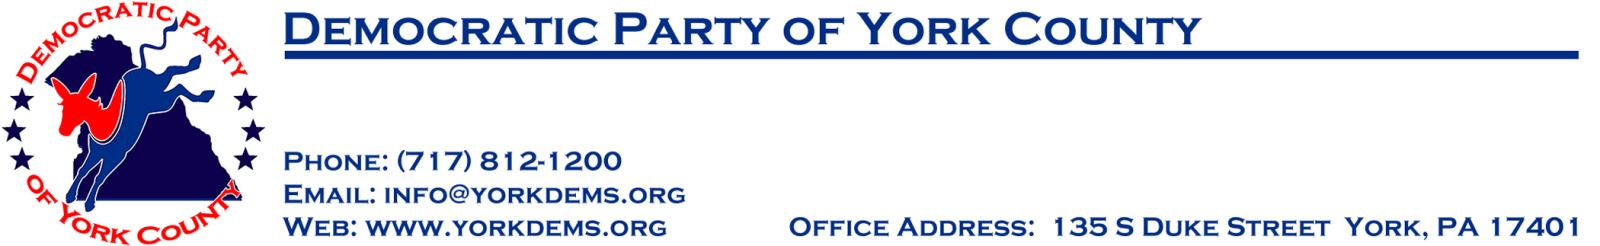 Democratic Party of York County